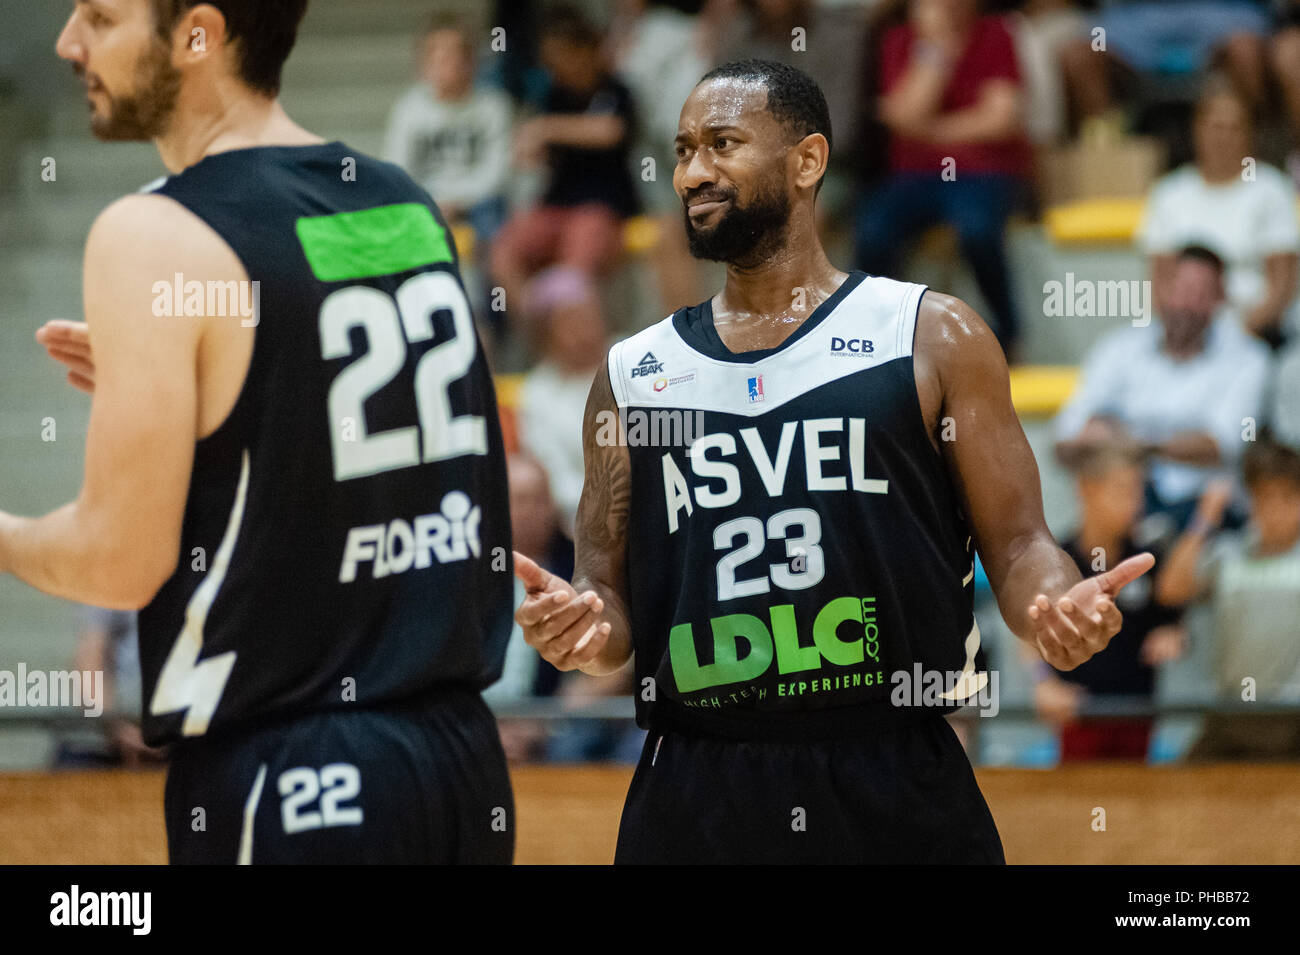 Belleville-sur-Saône, France. 31st August 2018.  Ain Star Games is a preparation tournament - The match was against ASVEL and KK Mornar Bar (88-68). David Lighty. Credit: FRANCK CHAPOLARD/Alamy Live News - Stock Image